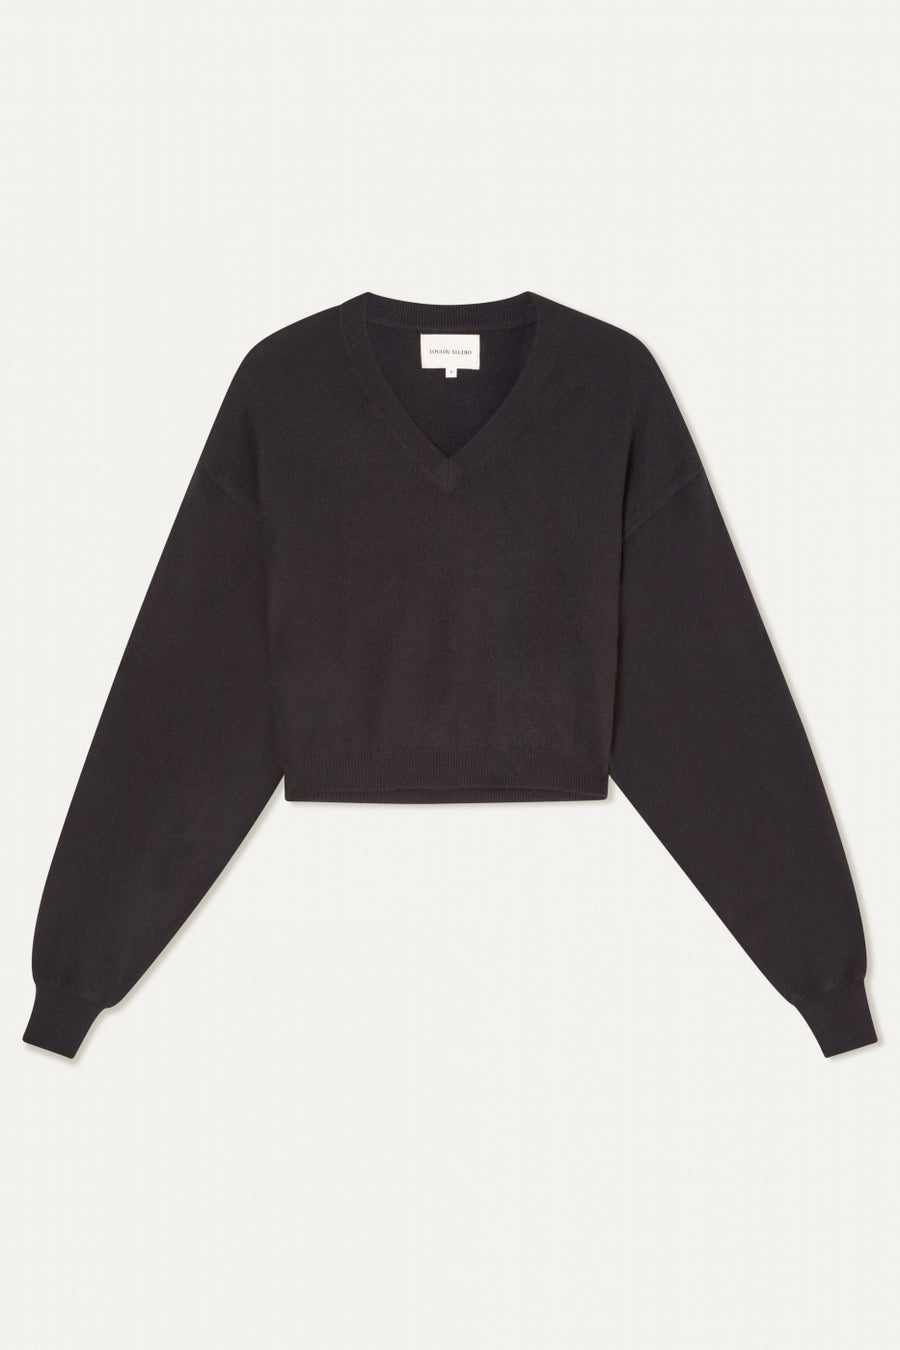 Fangatau Sweater - Black